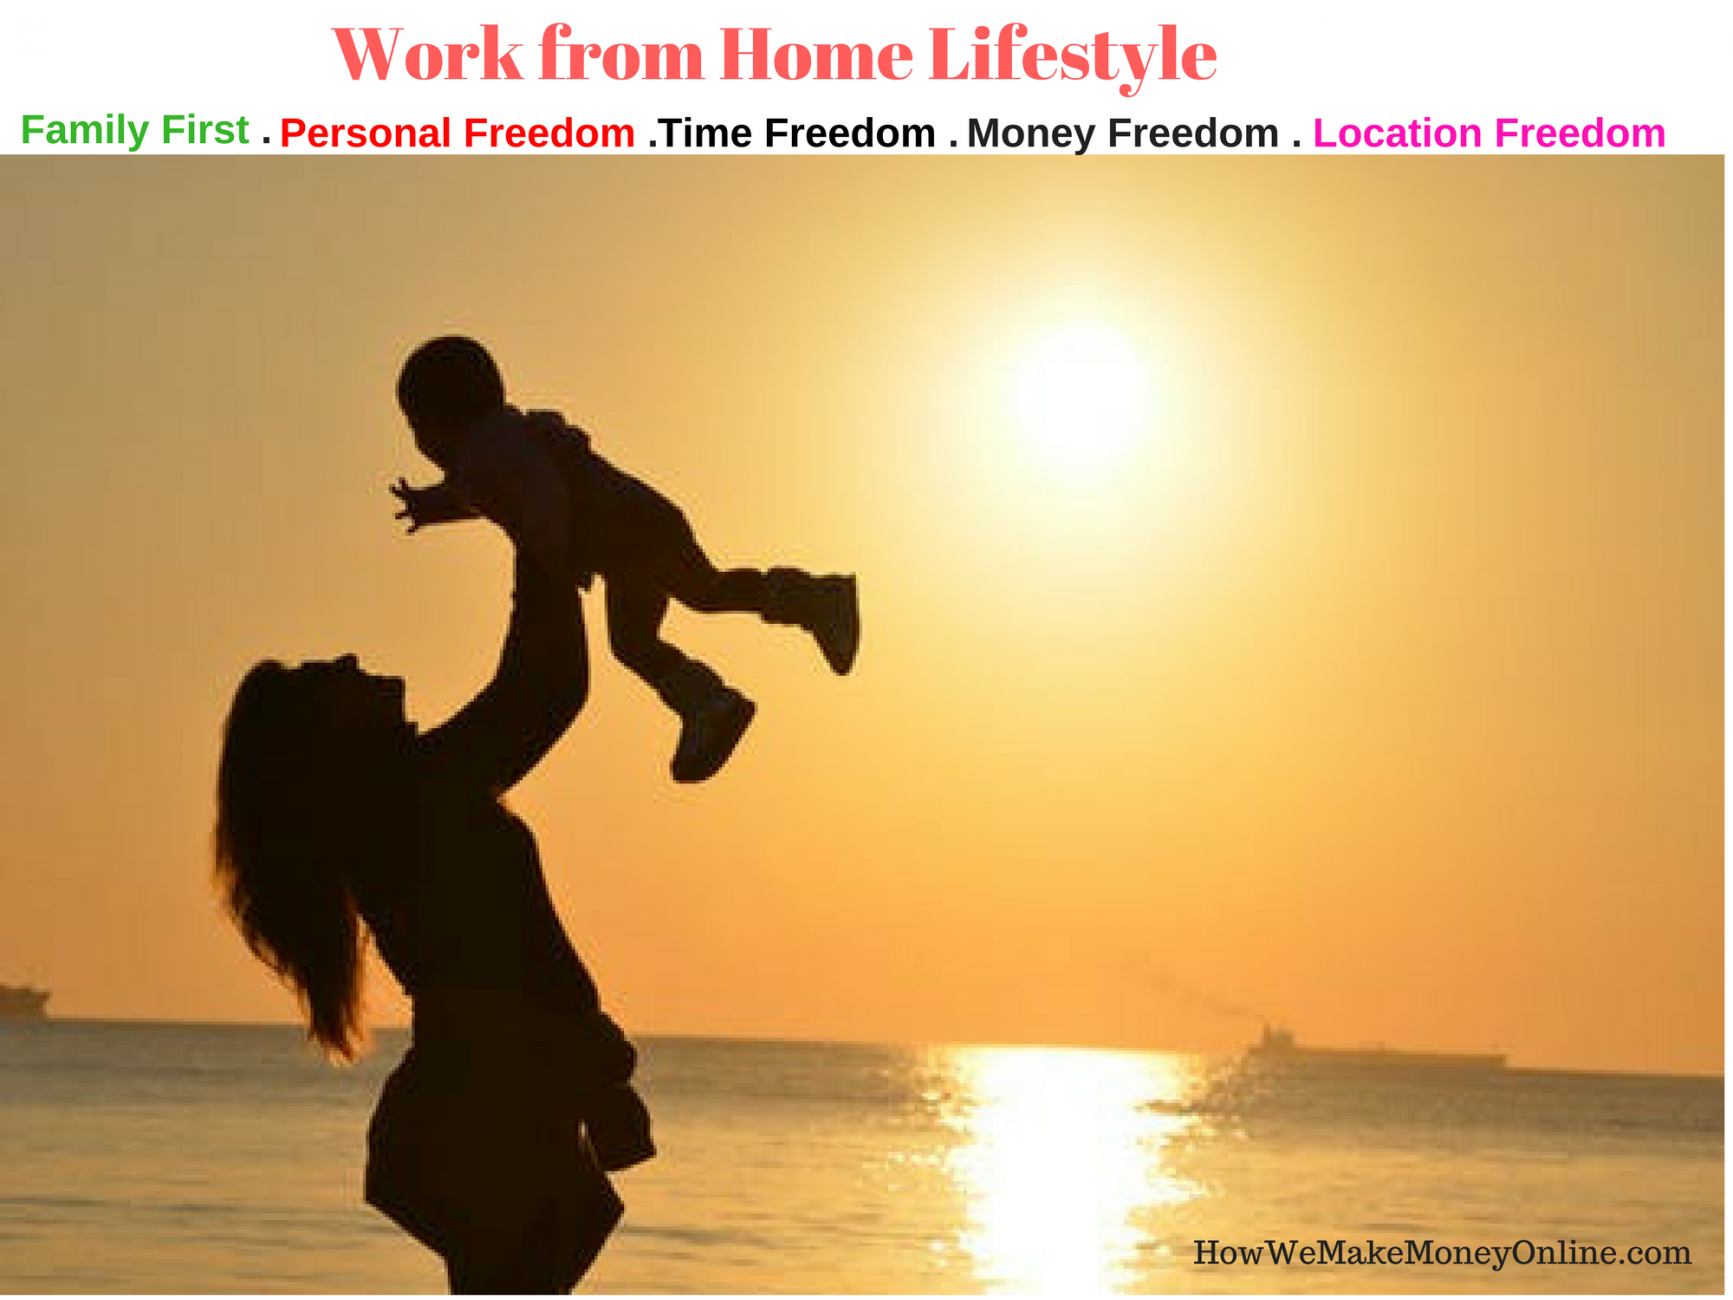 230 Work from Home Companies Want to Hire You